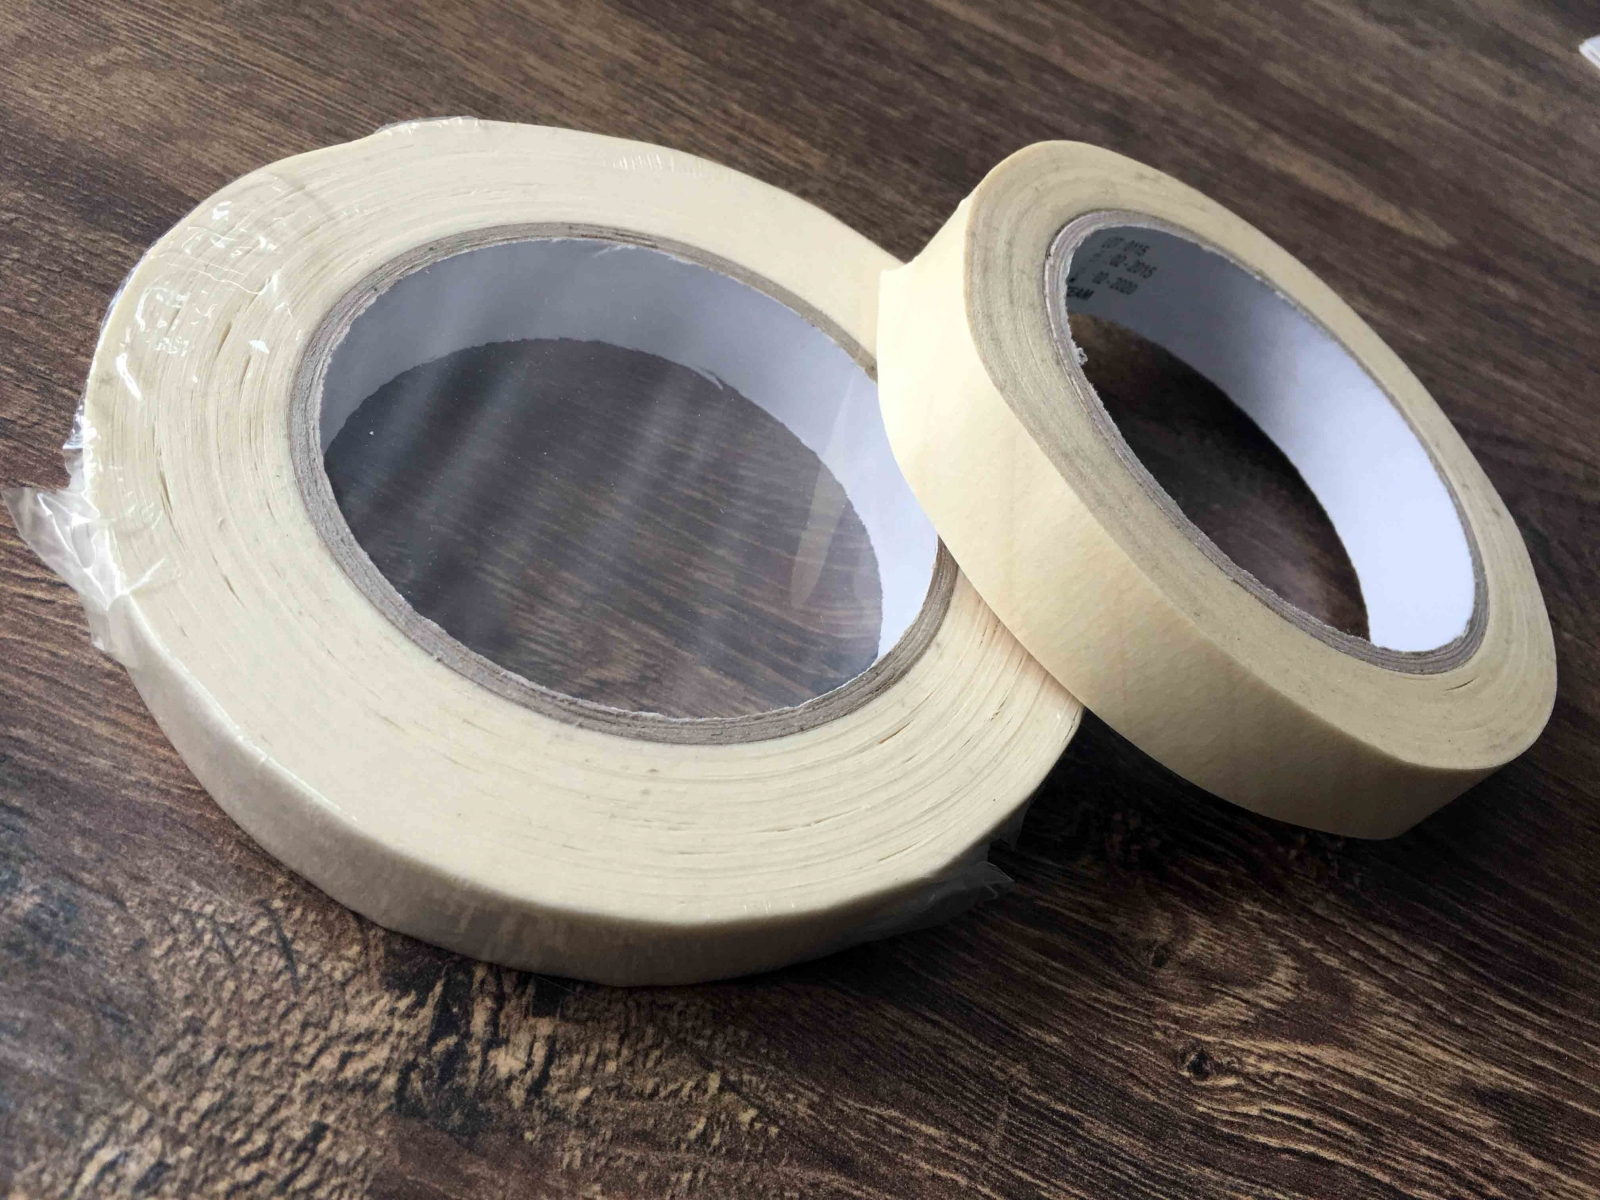 STERILIZATION STEAM TAPE